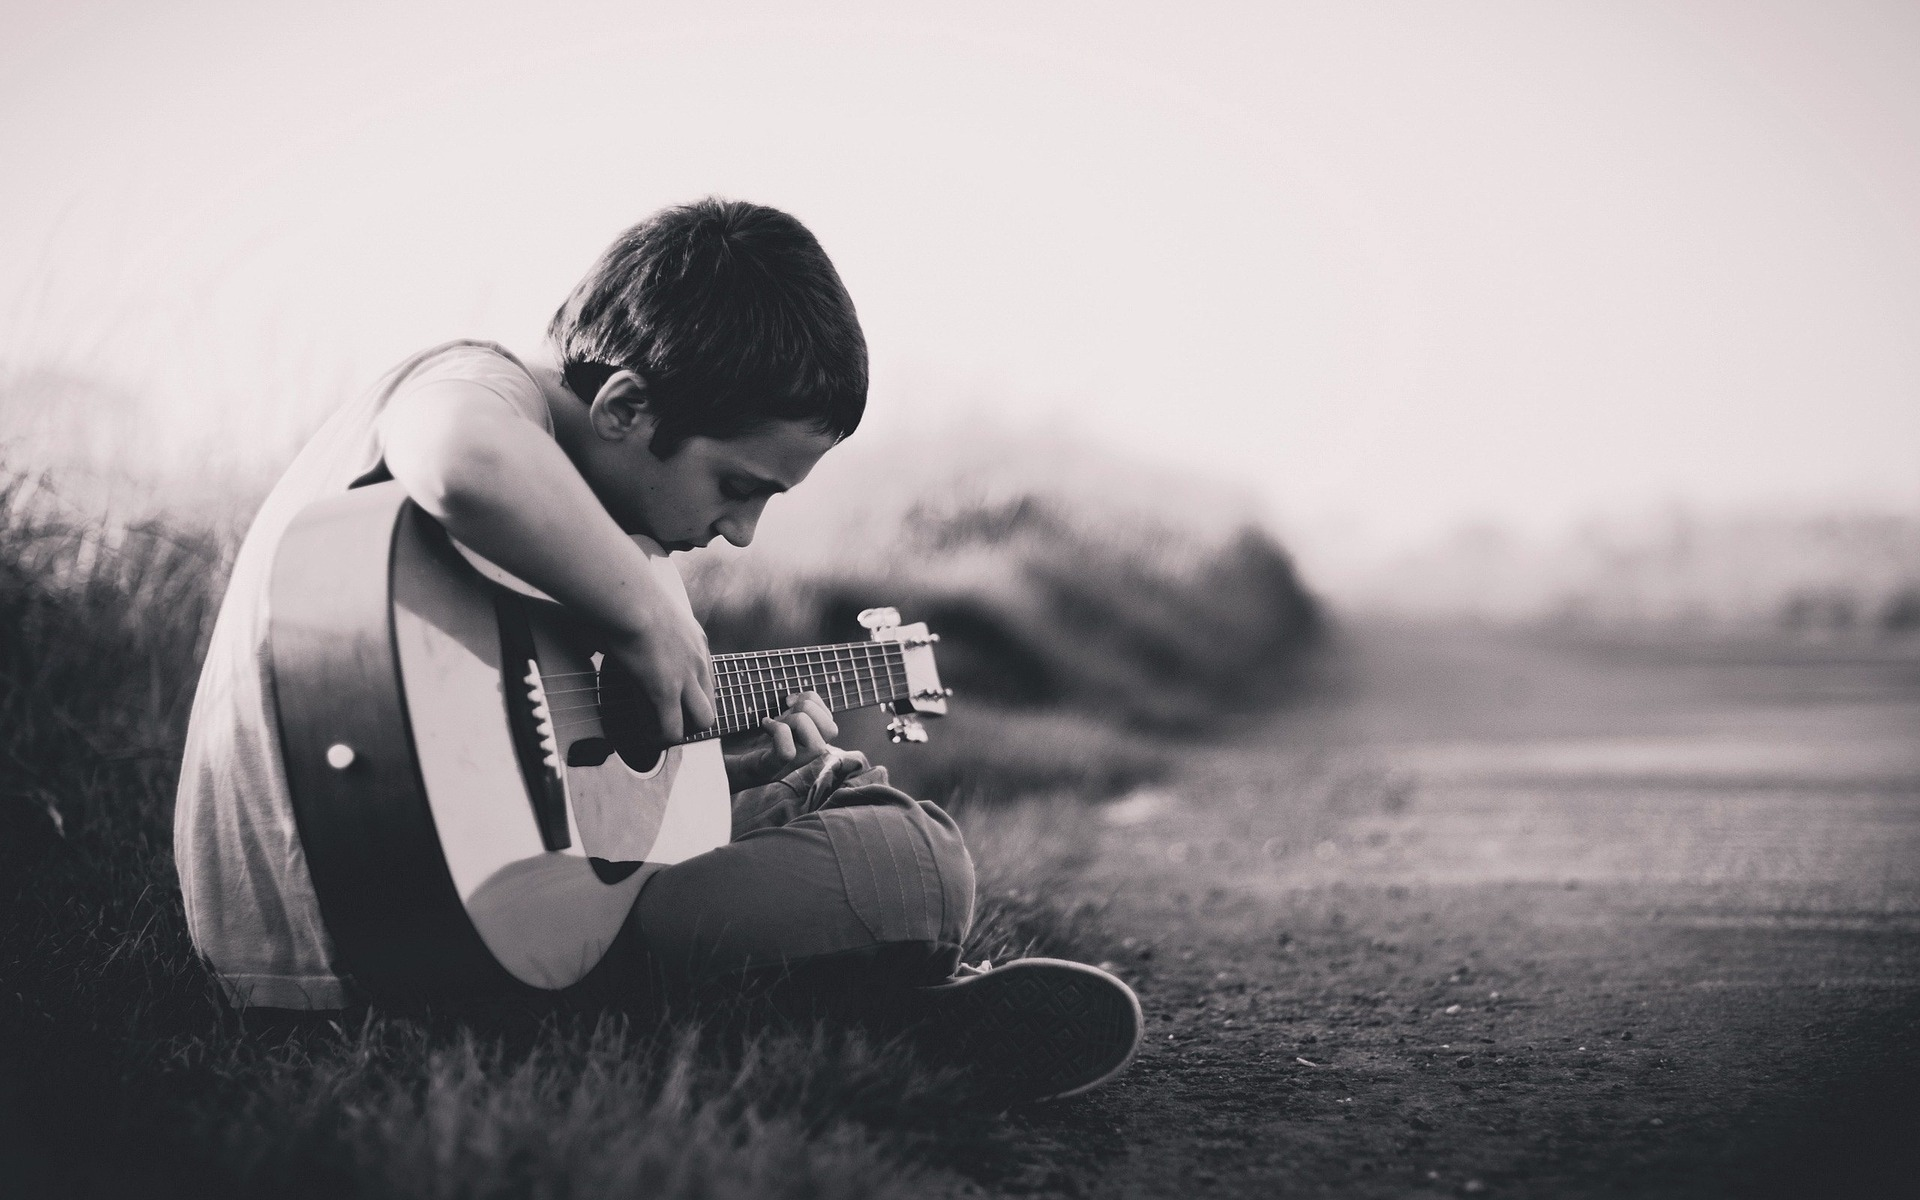 sepia-toned photo of boy playing guitar by side of rural road